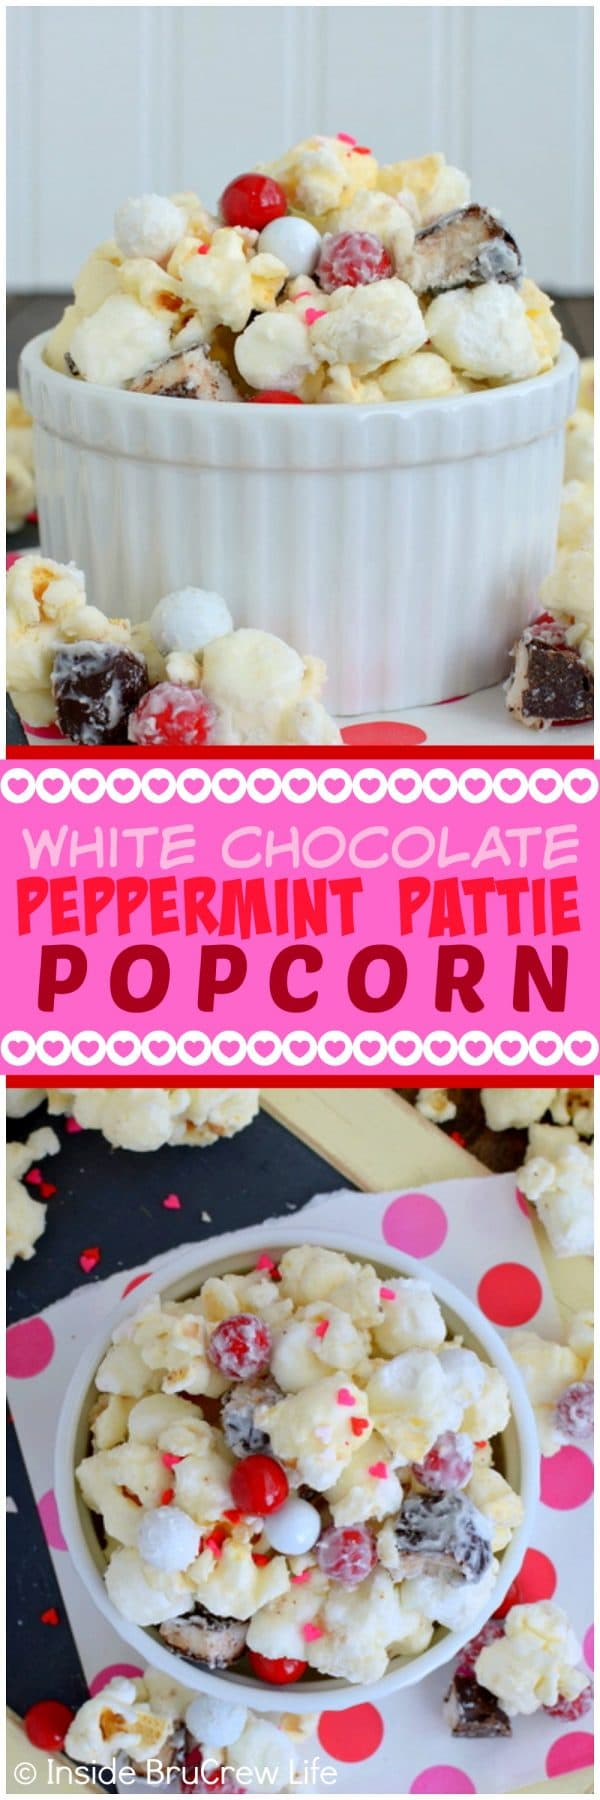 White Chocolate Peppermint Pattie Popcorn - sweet snack mix loaded with marshmallows, peppermint candies, and sprinkles!